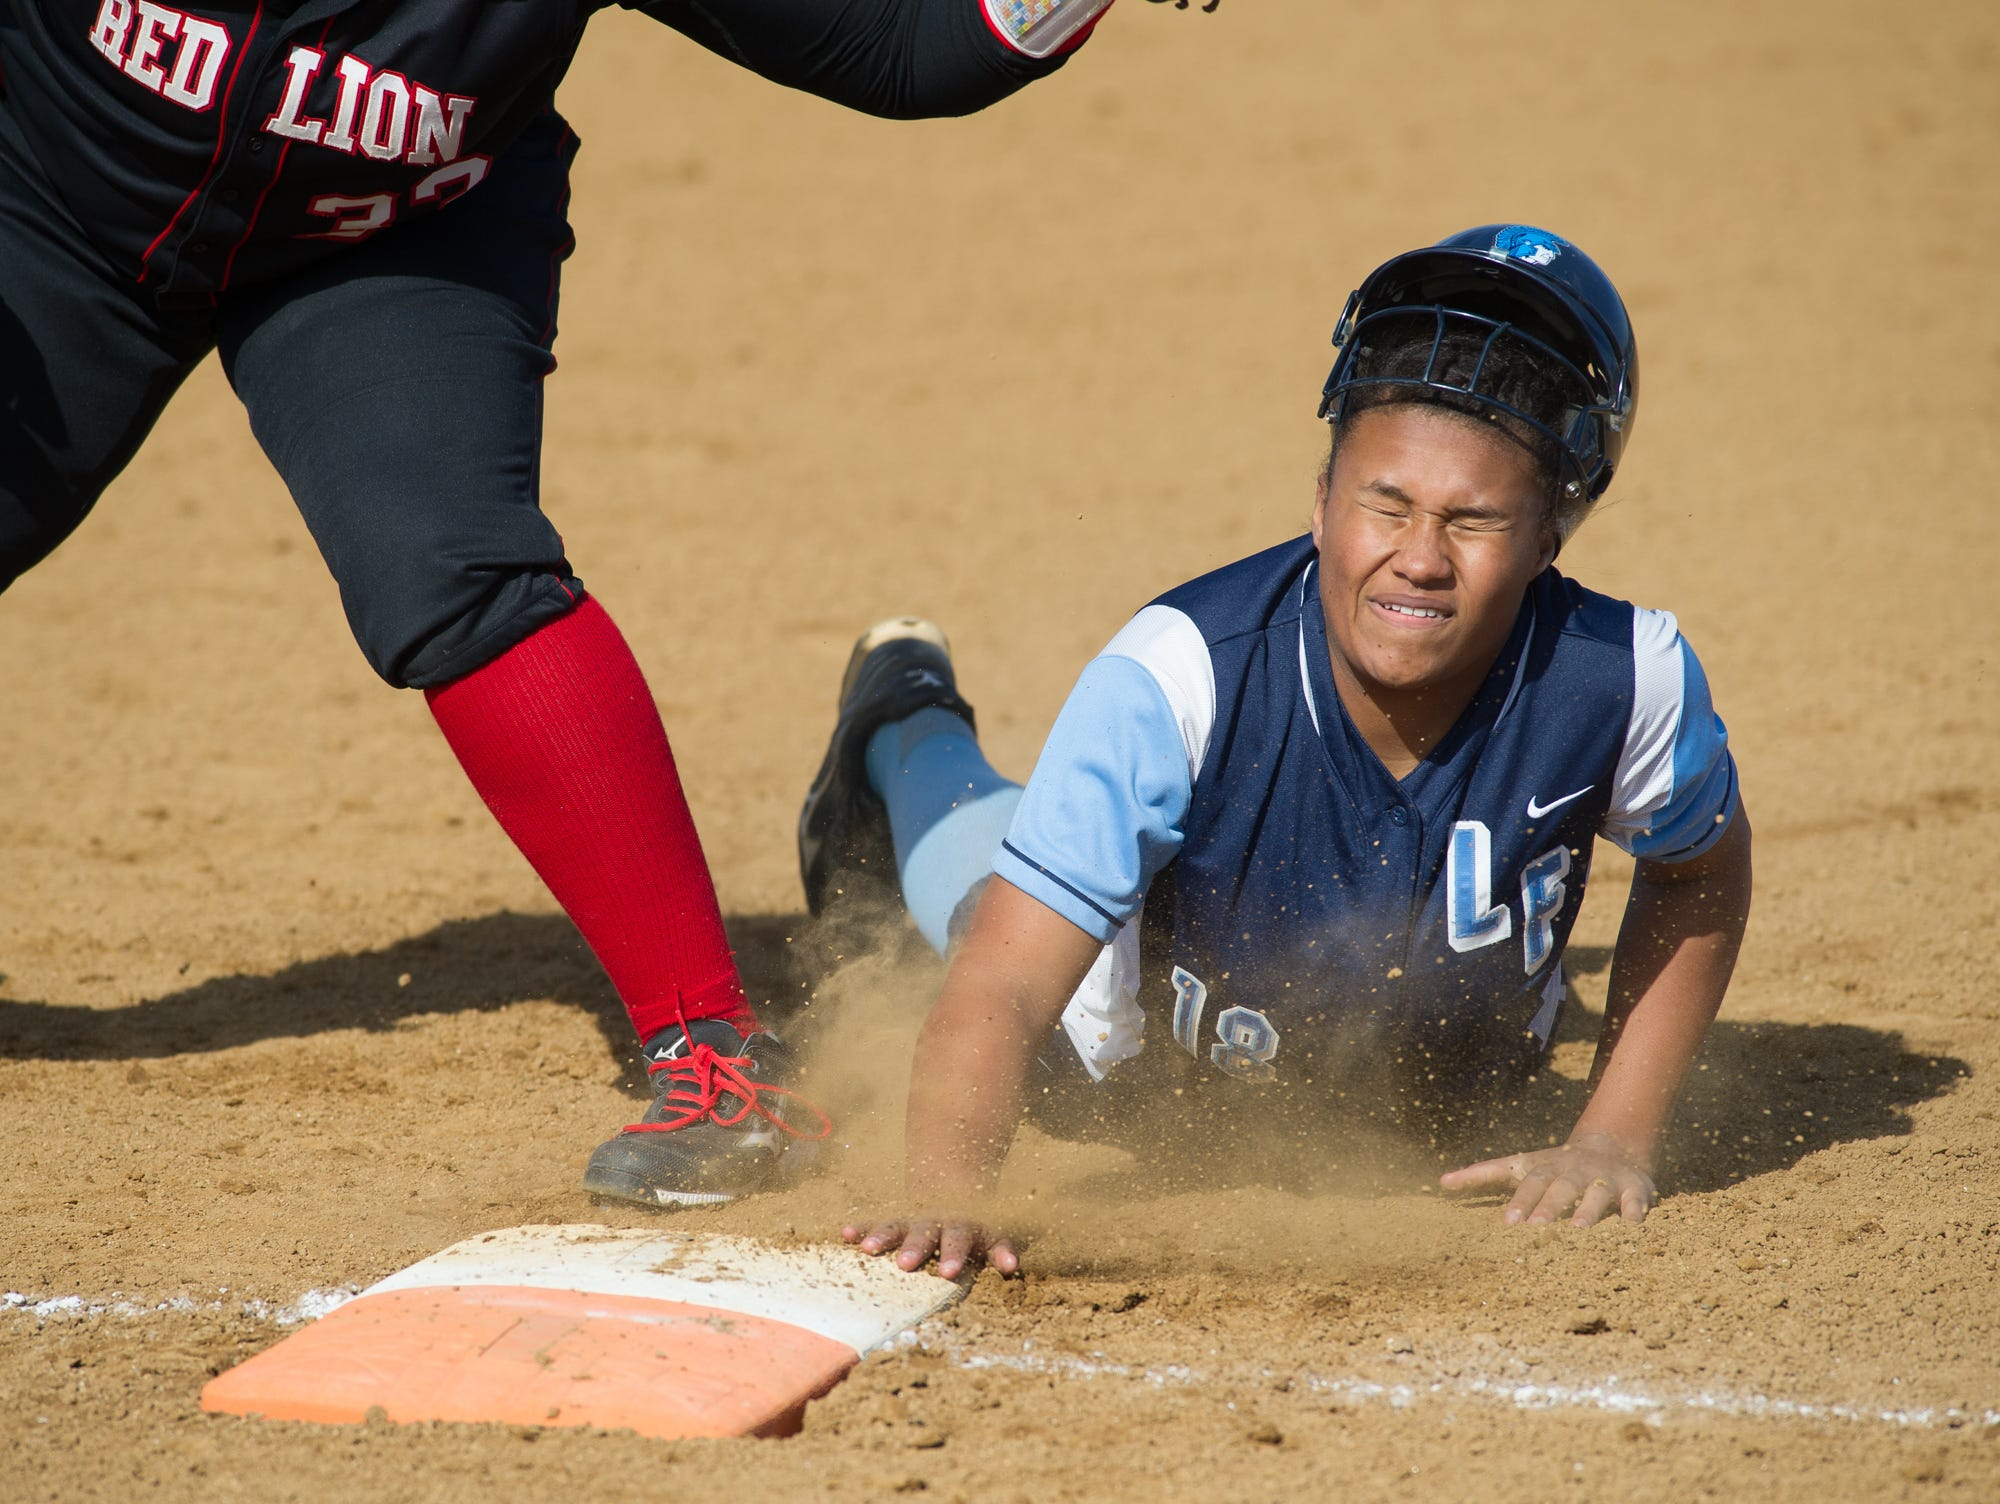 Lake Forest's Kayla Thompson (18) dives back to first base in their game against Red Lion.